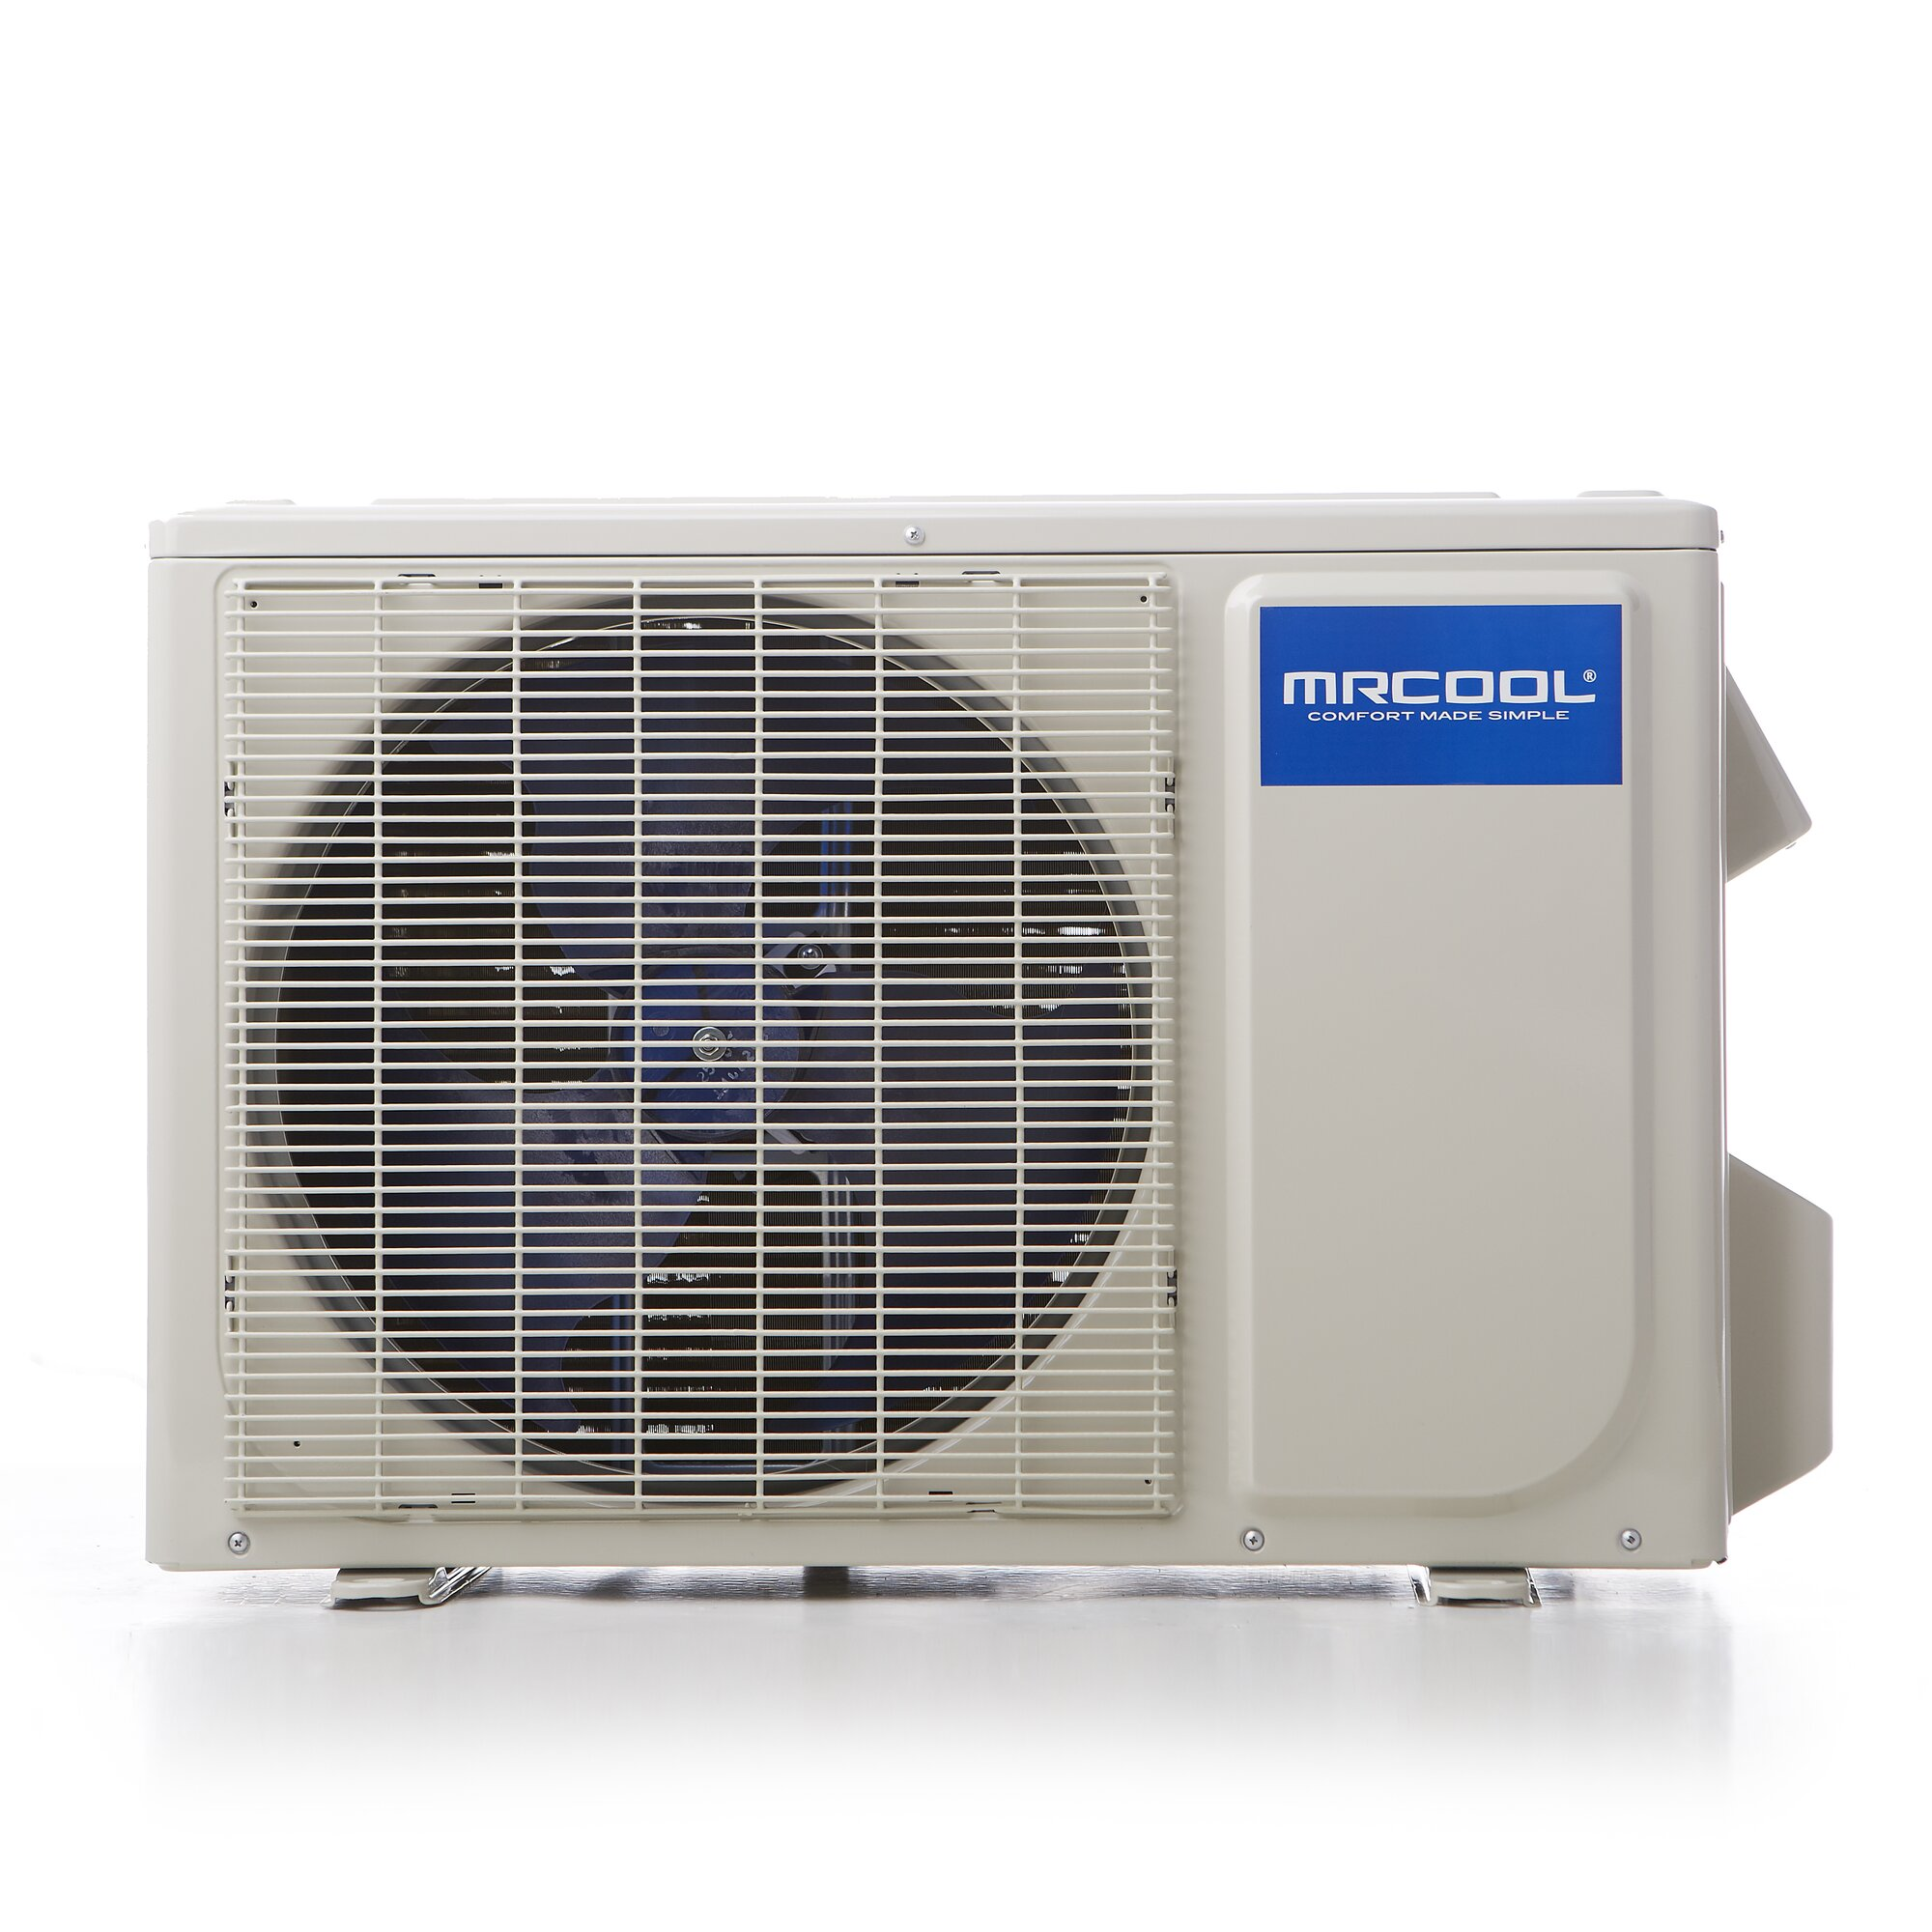 #1C51AE MrCool 24 000 BTU Ductless Mini Split Air Conditioner With  Highly Rated 11809 Ductless Room Air Conditioners wallpapers with 2000x2000 px on helpvideos.info - Air Conditioners, Air Coolers and more